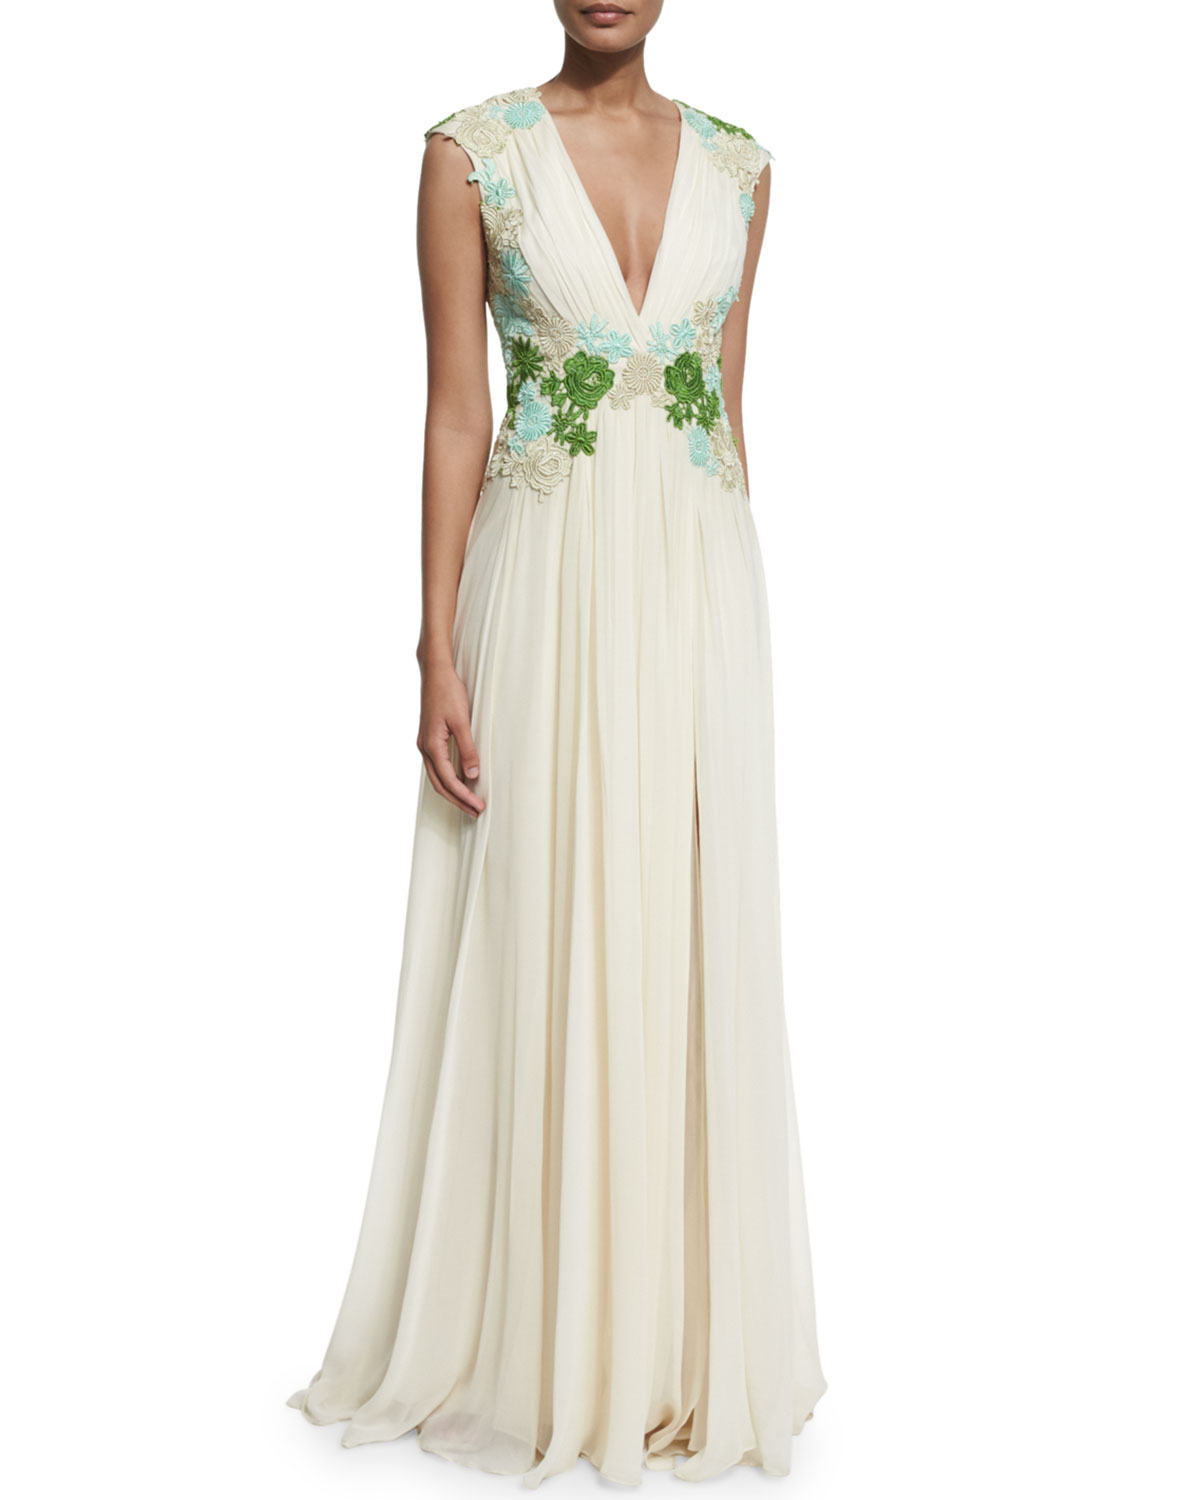 Badgley Mischka Sleeveless Floral-Embellished Grecian Gown ...